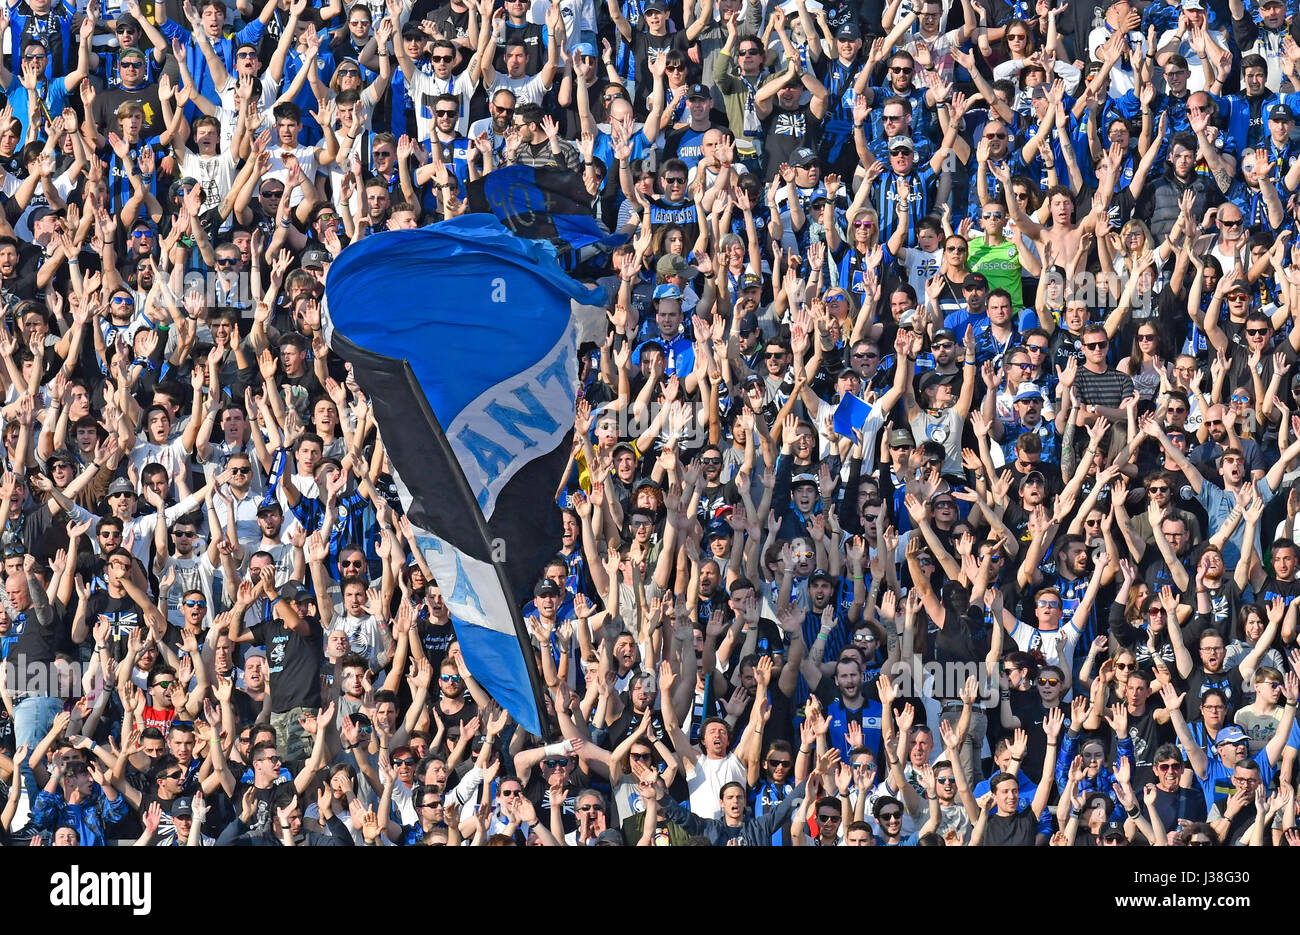 Atalanta soccer fans cheering and waving flags during an italian serie A soccer match at the Atleti Azzurri d'Italia - Stock Image